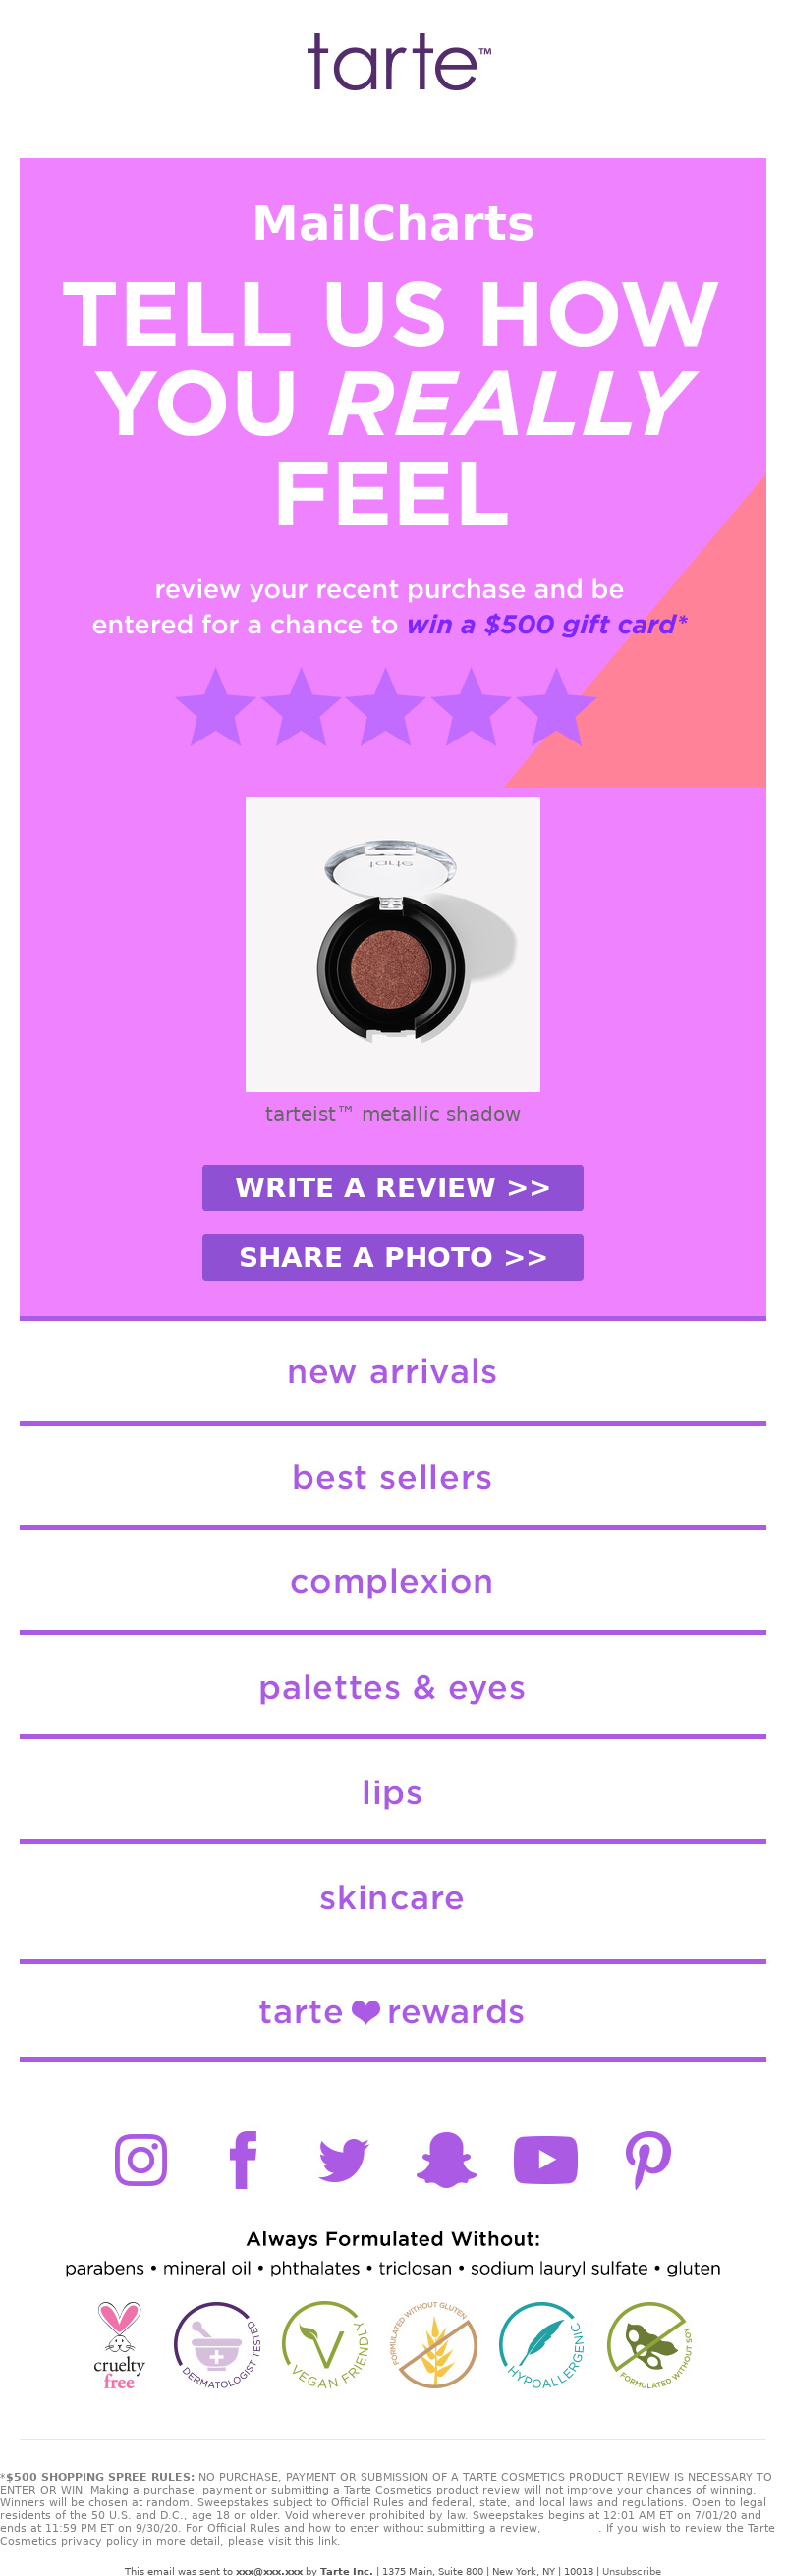 Tarte Cosmetics - MailCharts, are you loving your latest purchase?!